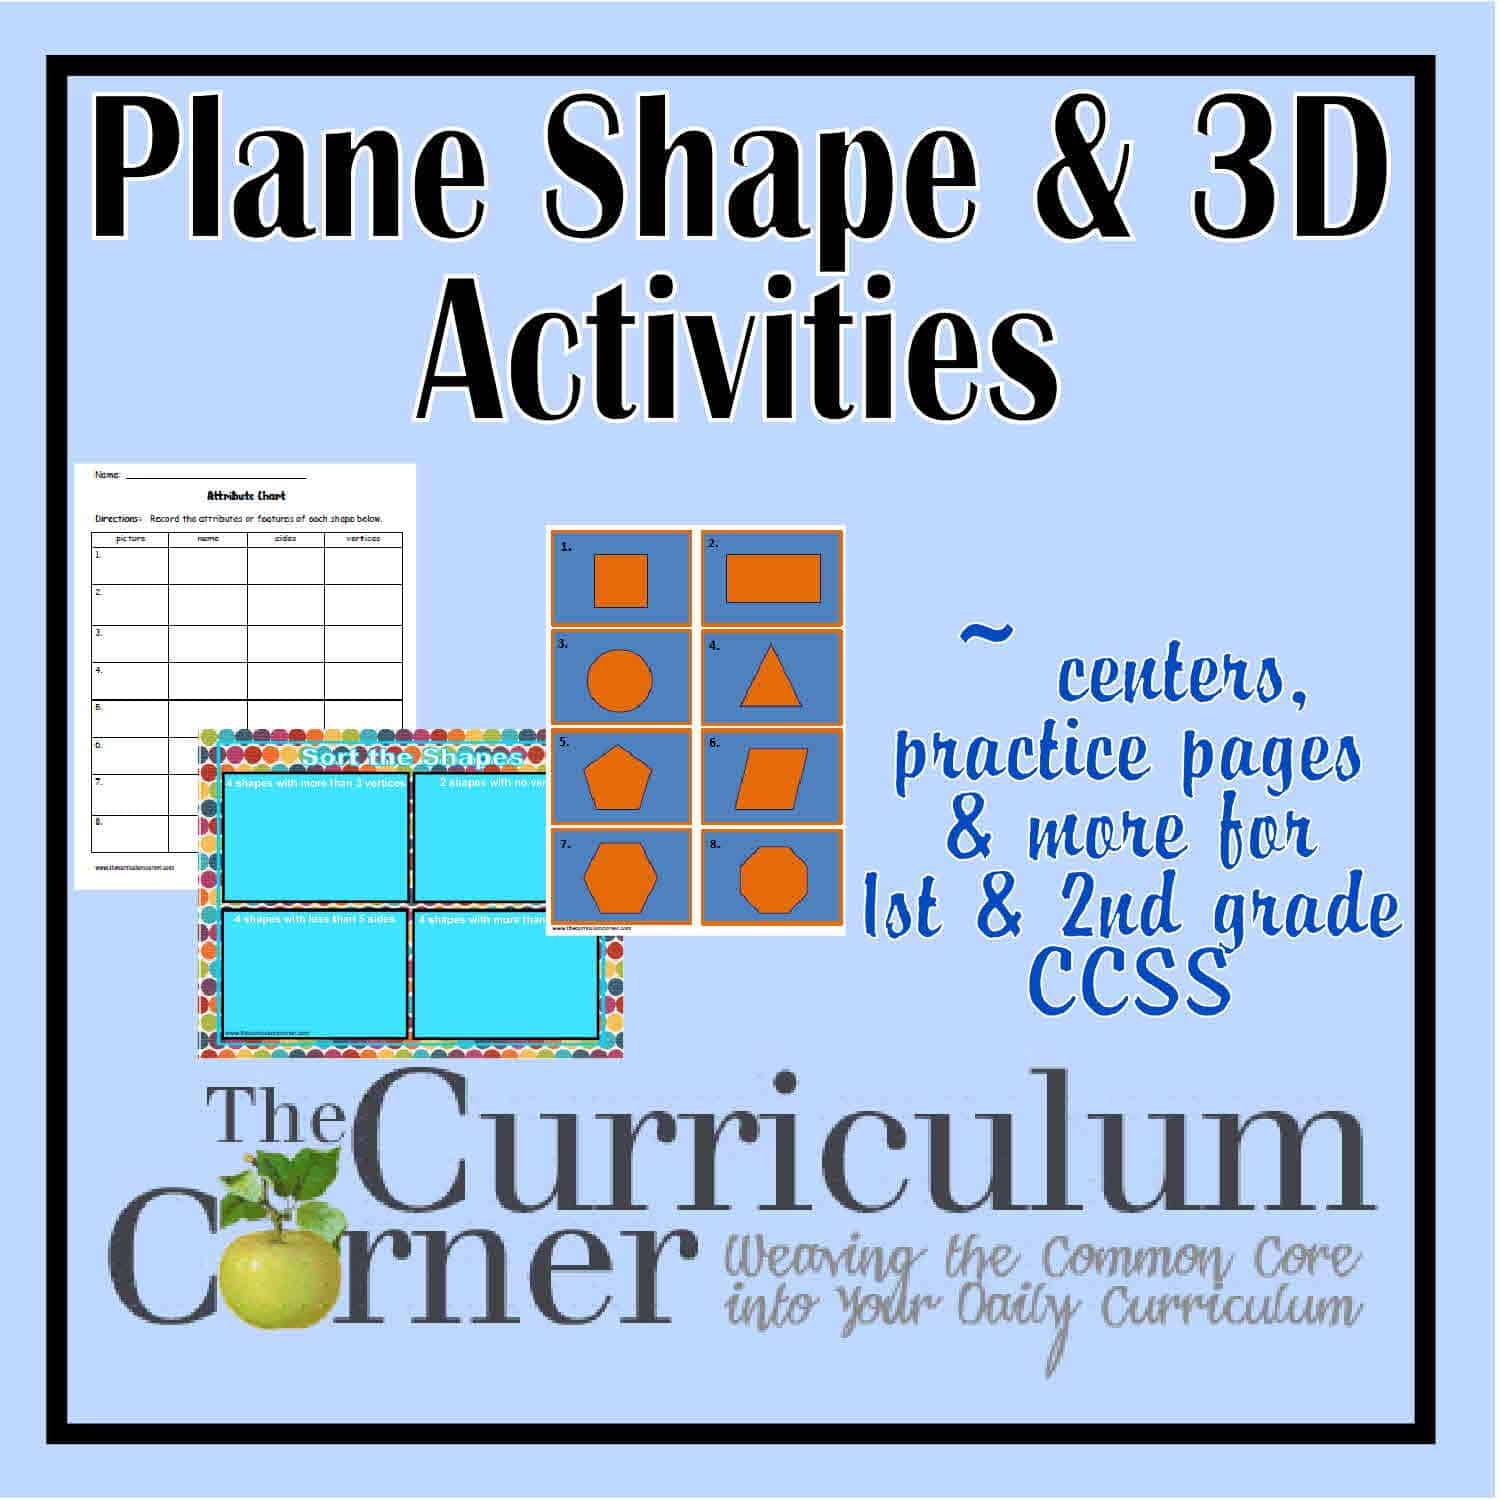 Plane & 3D Shapes Activities